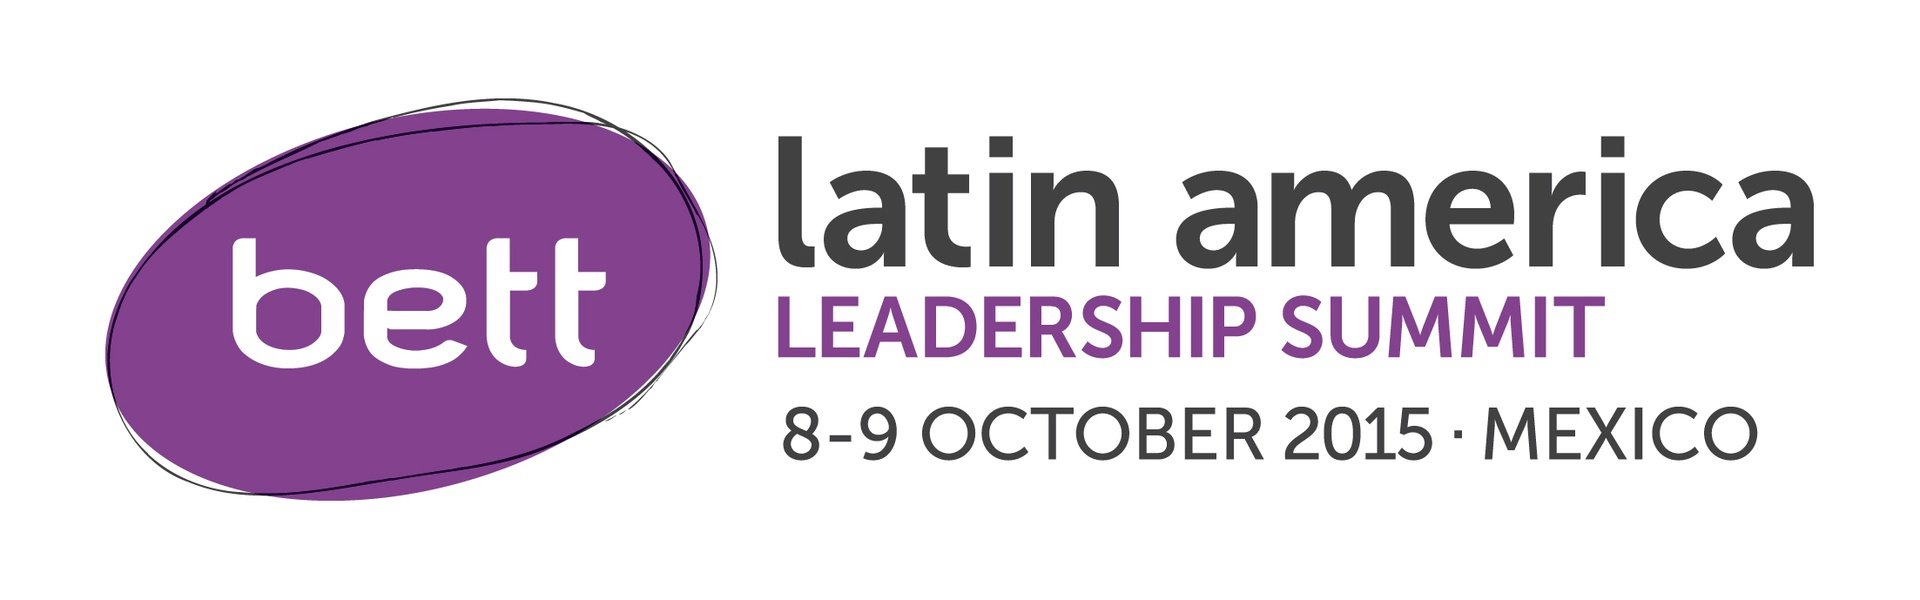 Bett Latin America Leadership Summit 2015